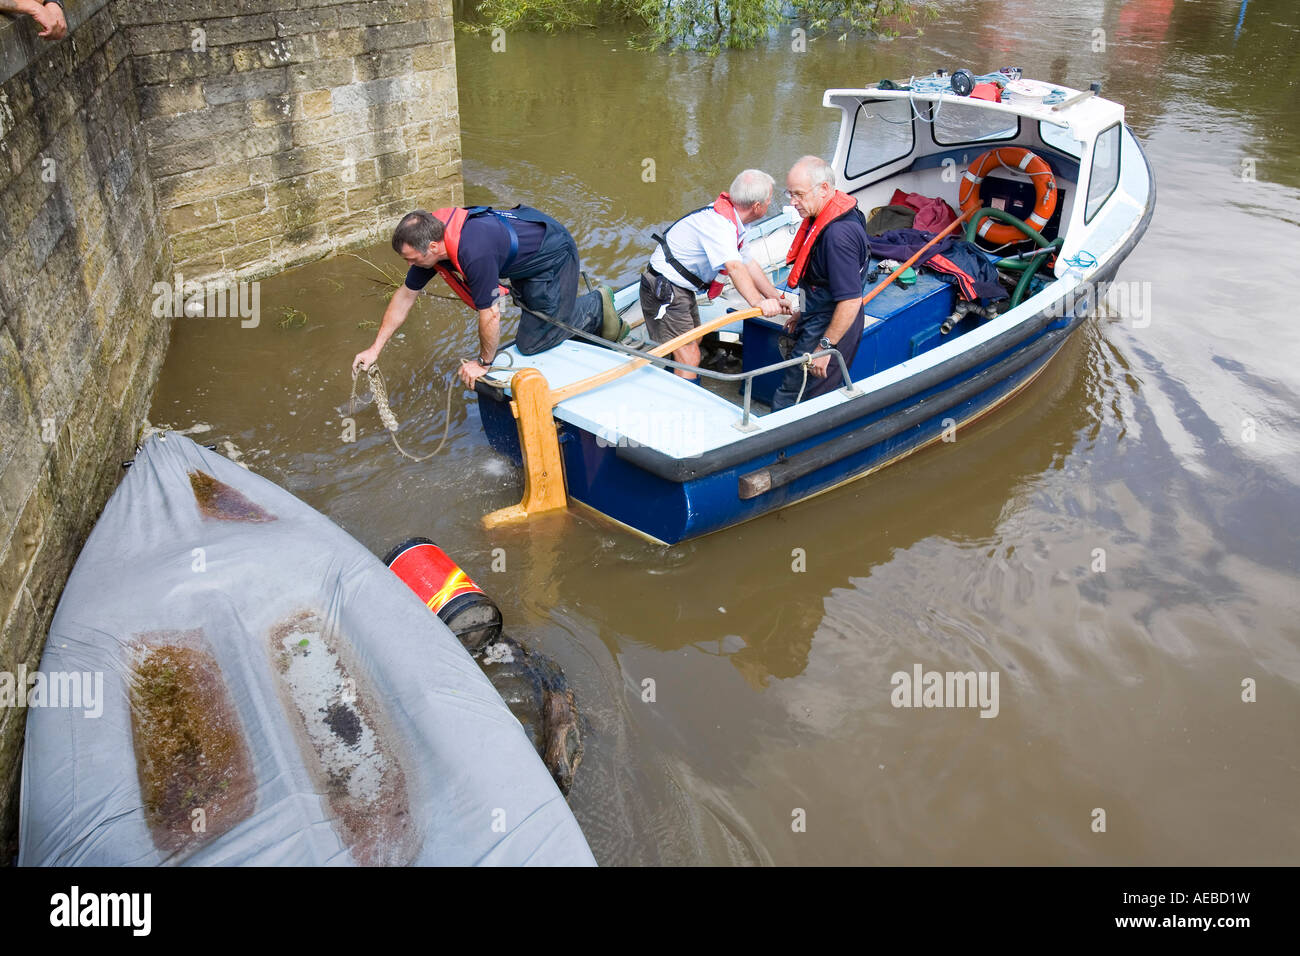 Rescuing a boat washed away against a bridge in Tewkesbury - Stock Image